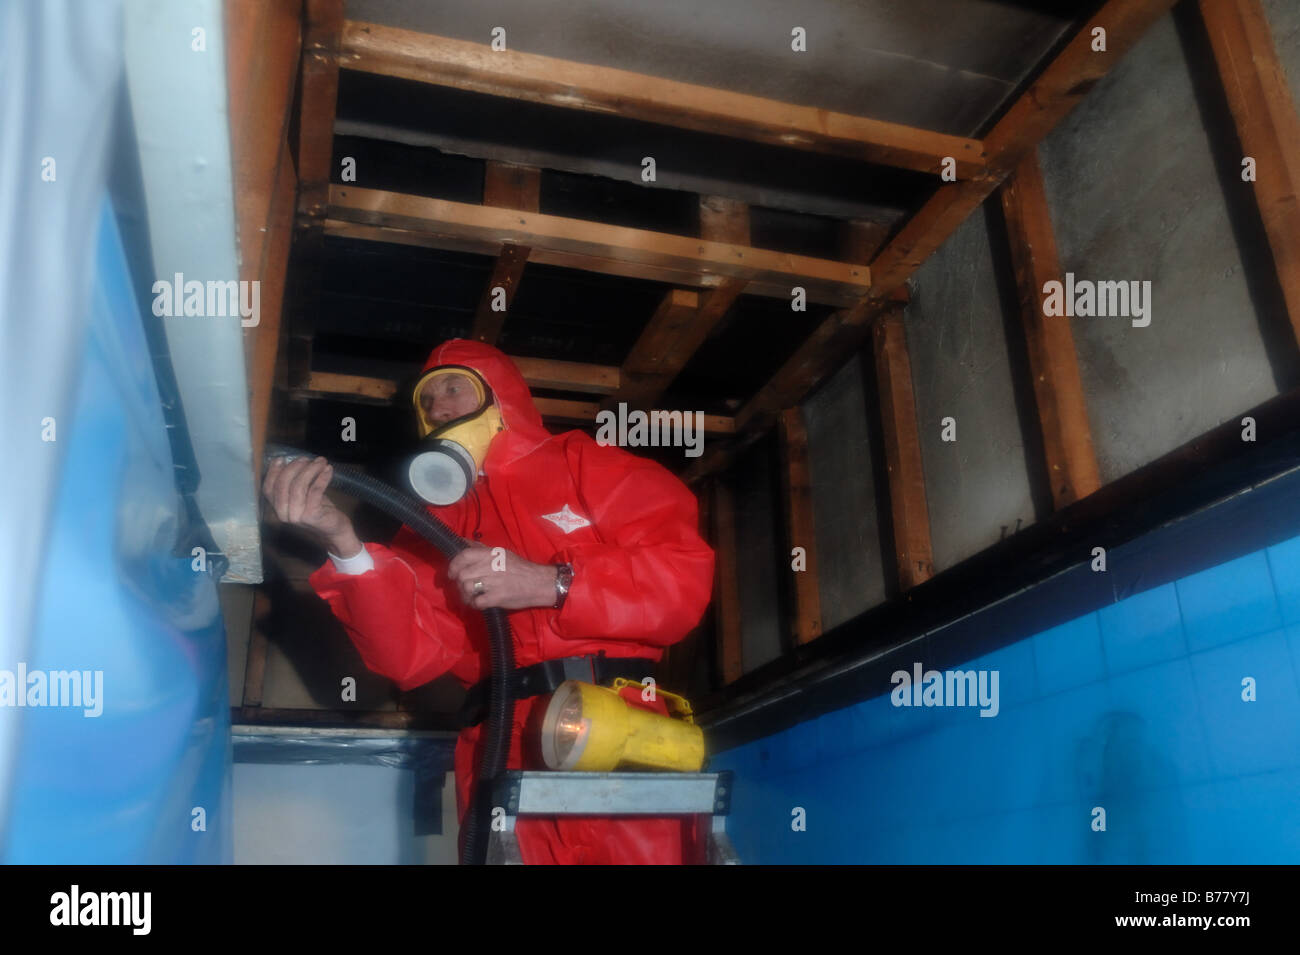 Man in full protective clothing inside a secured environment cleaning up after asbestos removal Exeter - Stock Image